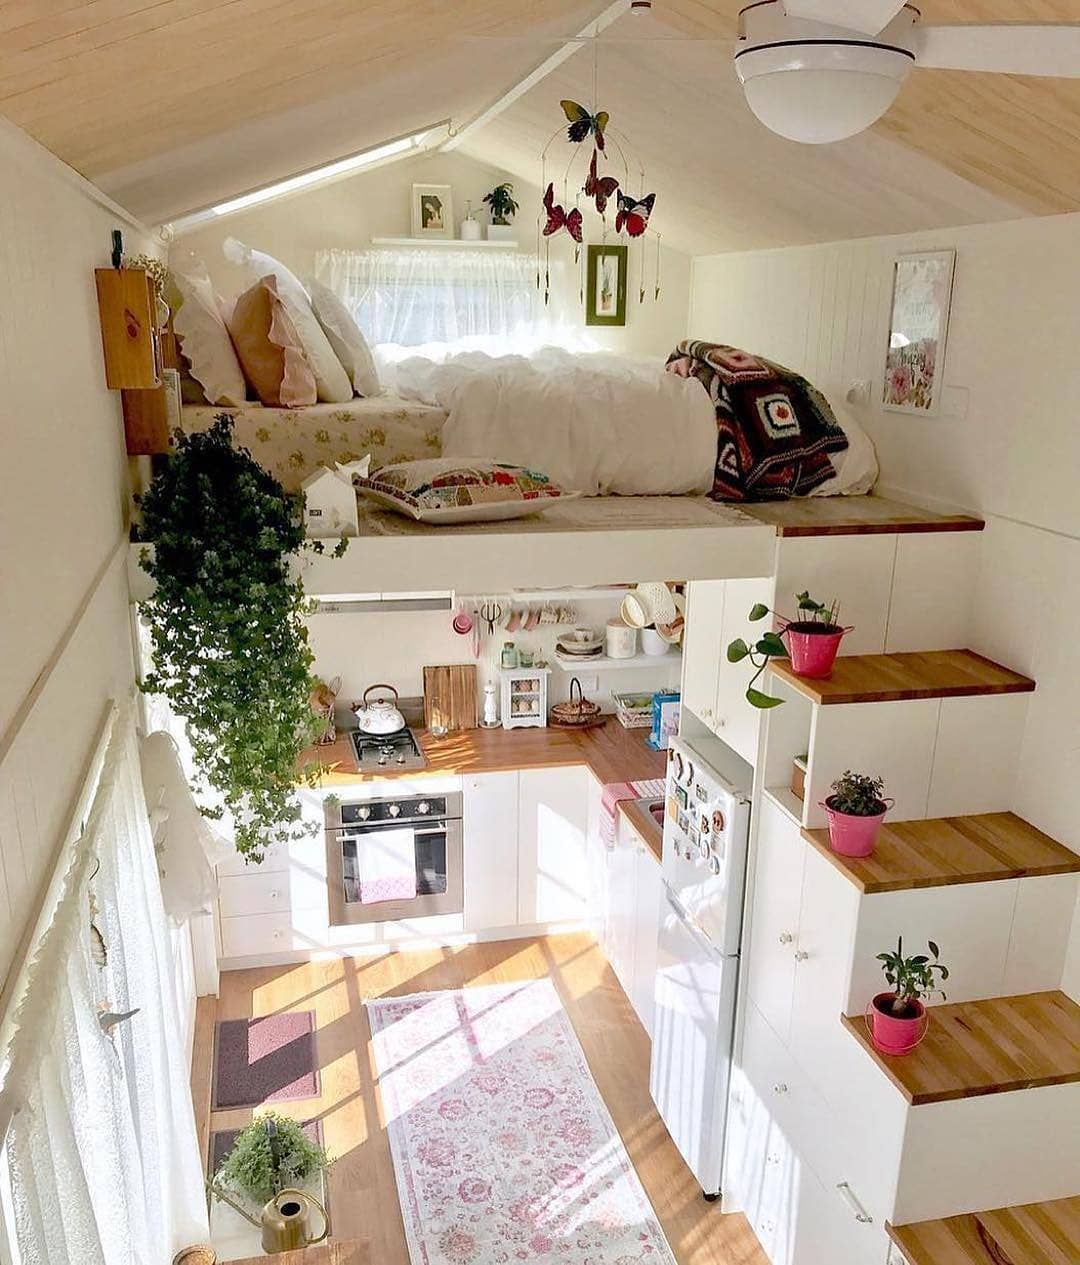 Cozi Homes On Instagram This Tiny House Is So Cute We Love All The Natural Light And Fresh Colors Tiny House Design Tiny House Interior Best Tiny House